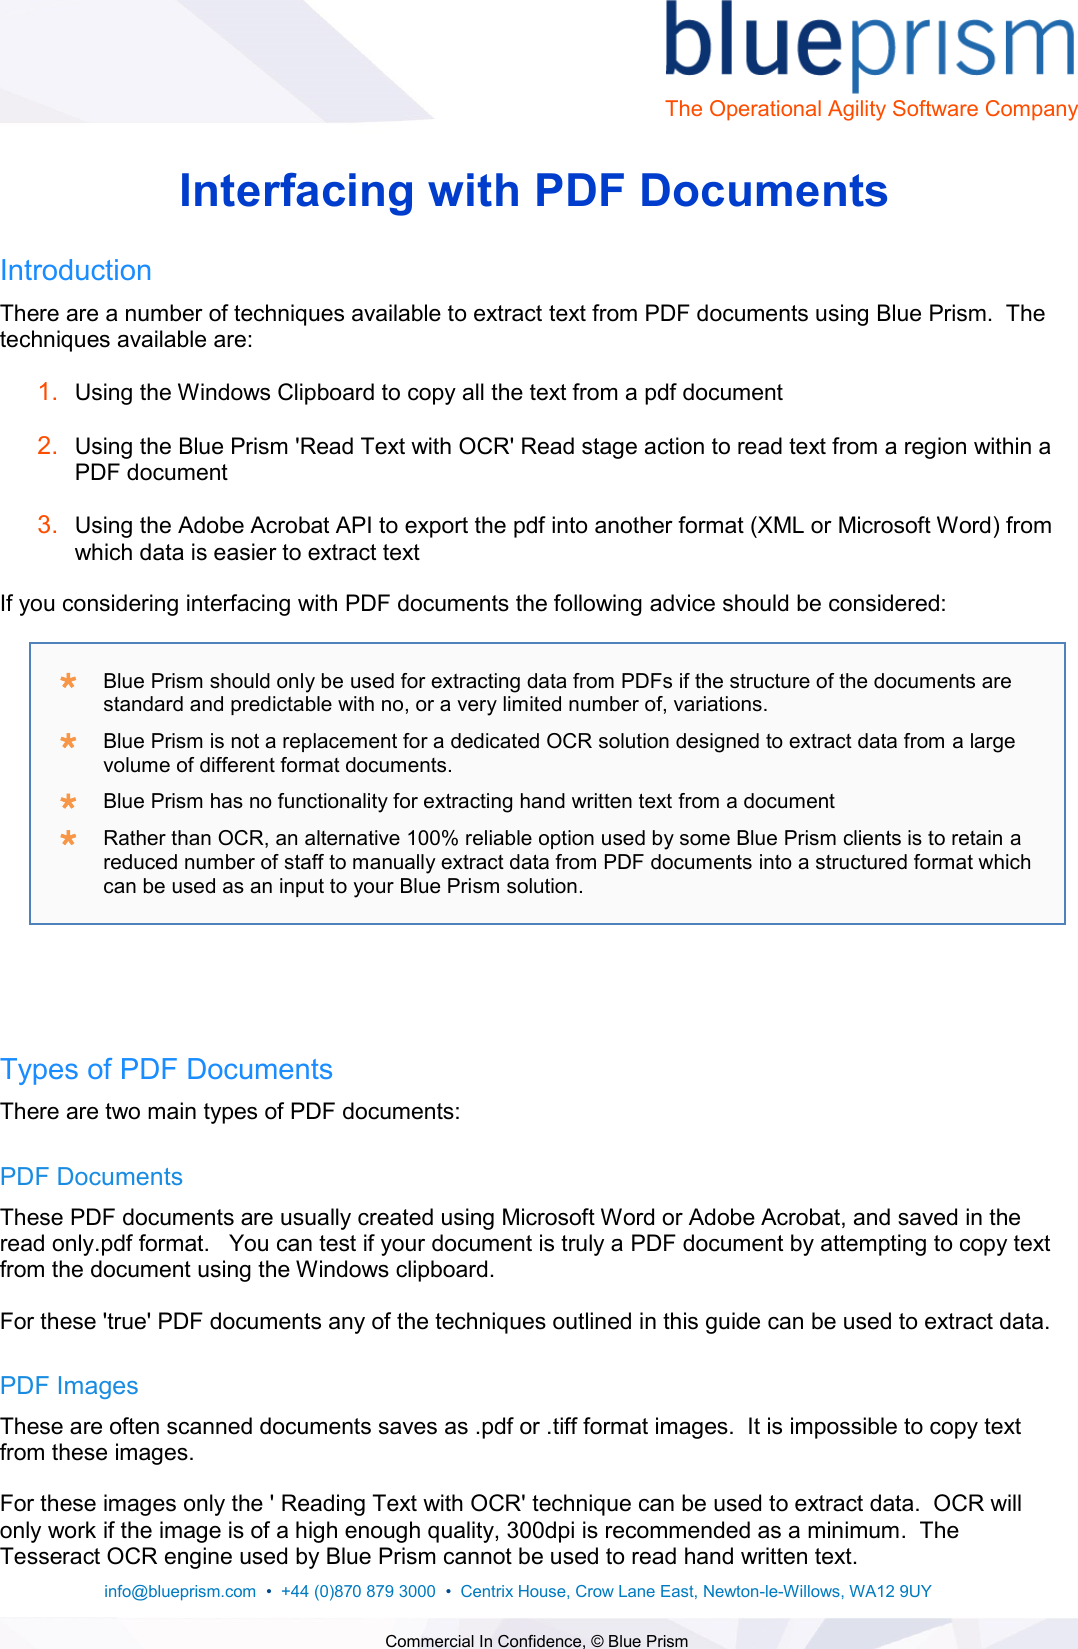 Page 1 of 5 - Guide - Interfacing With PDF S V1.0